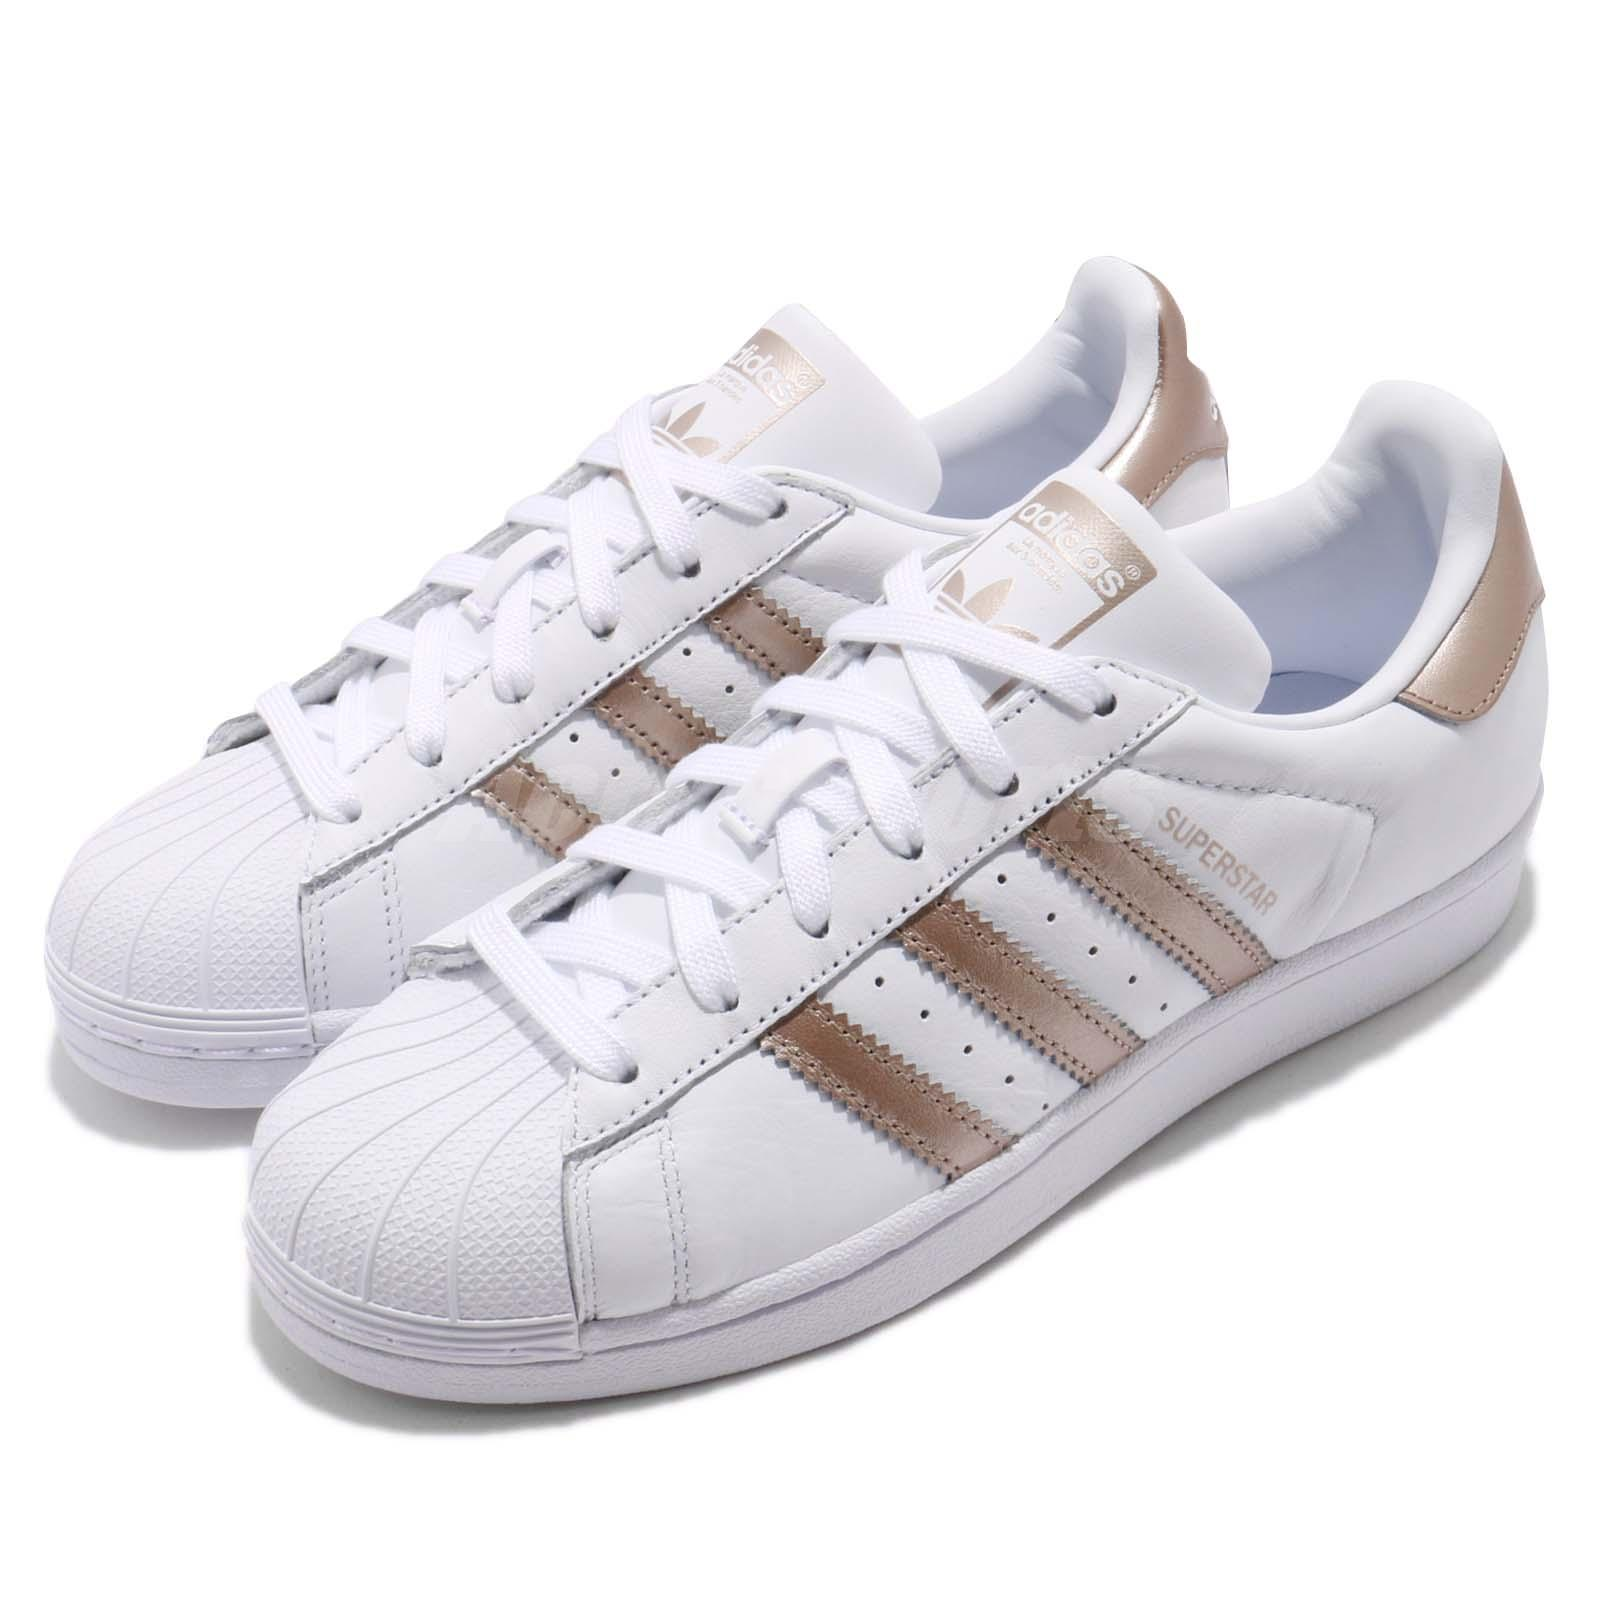 buy online 9b05f 044e5 Details about adidas Originals Superstar W White Rose Gold Women Classic  Shoes Sneakers CG5463